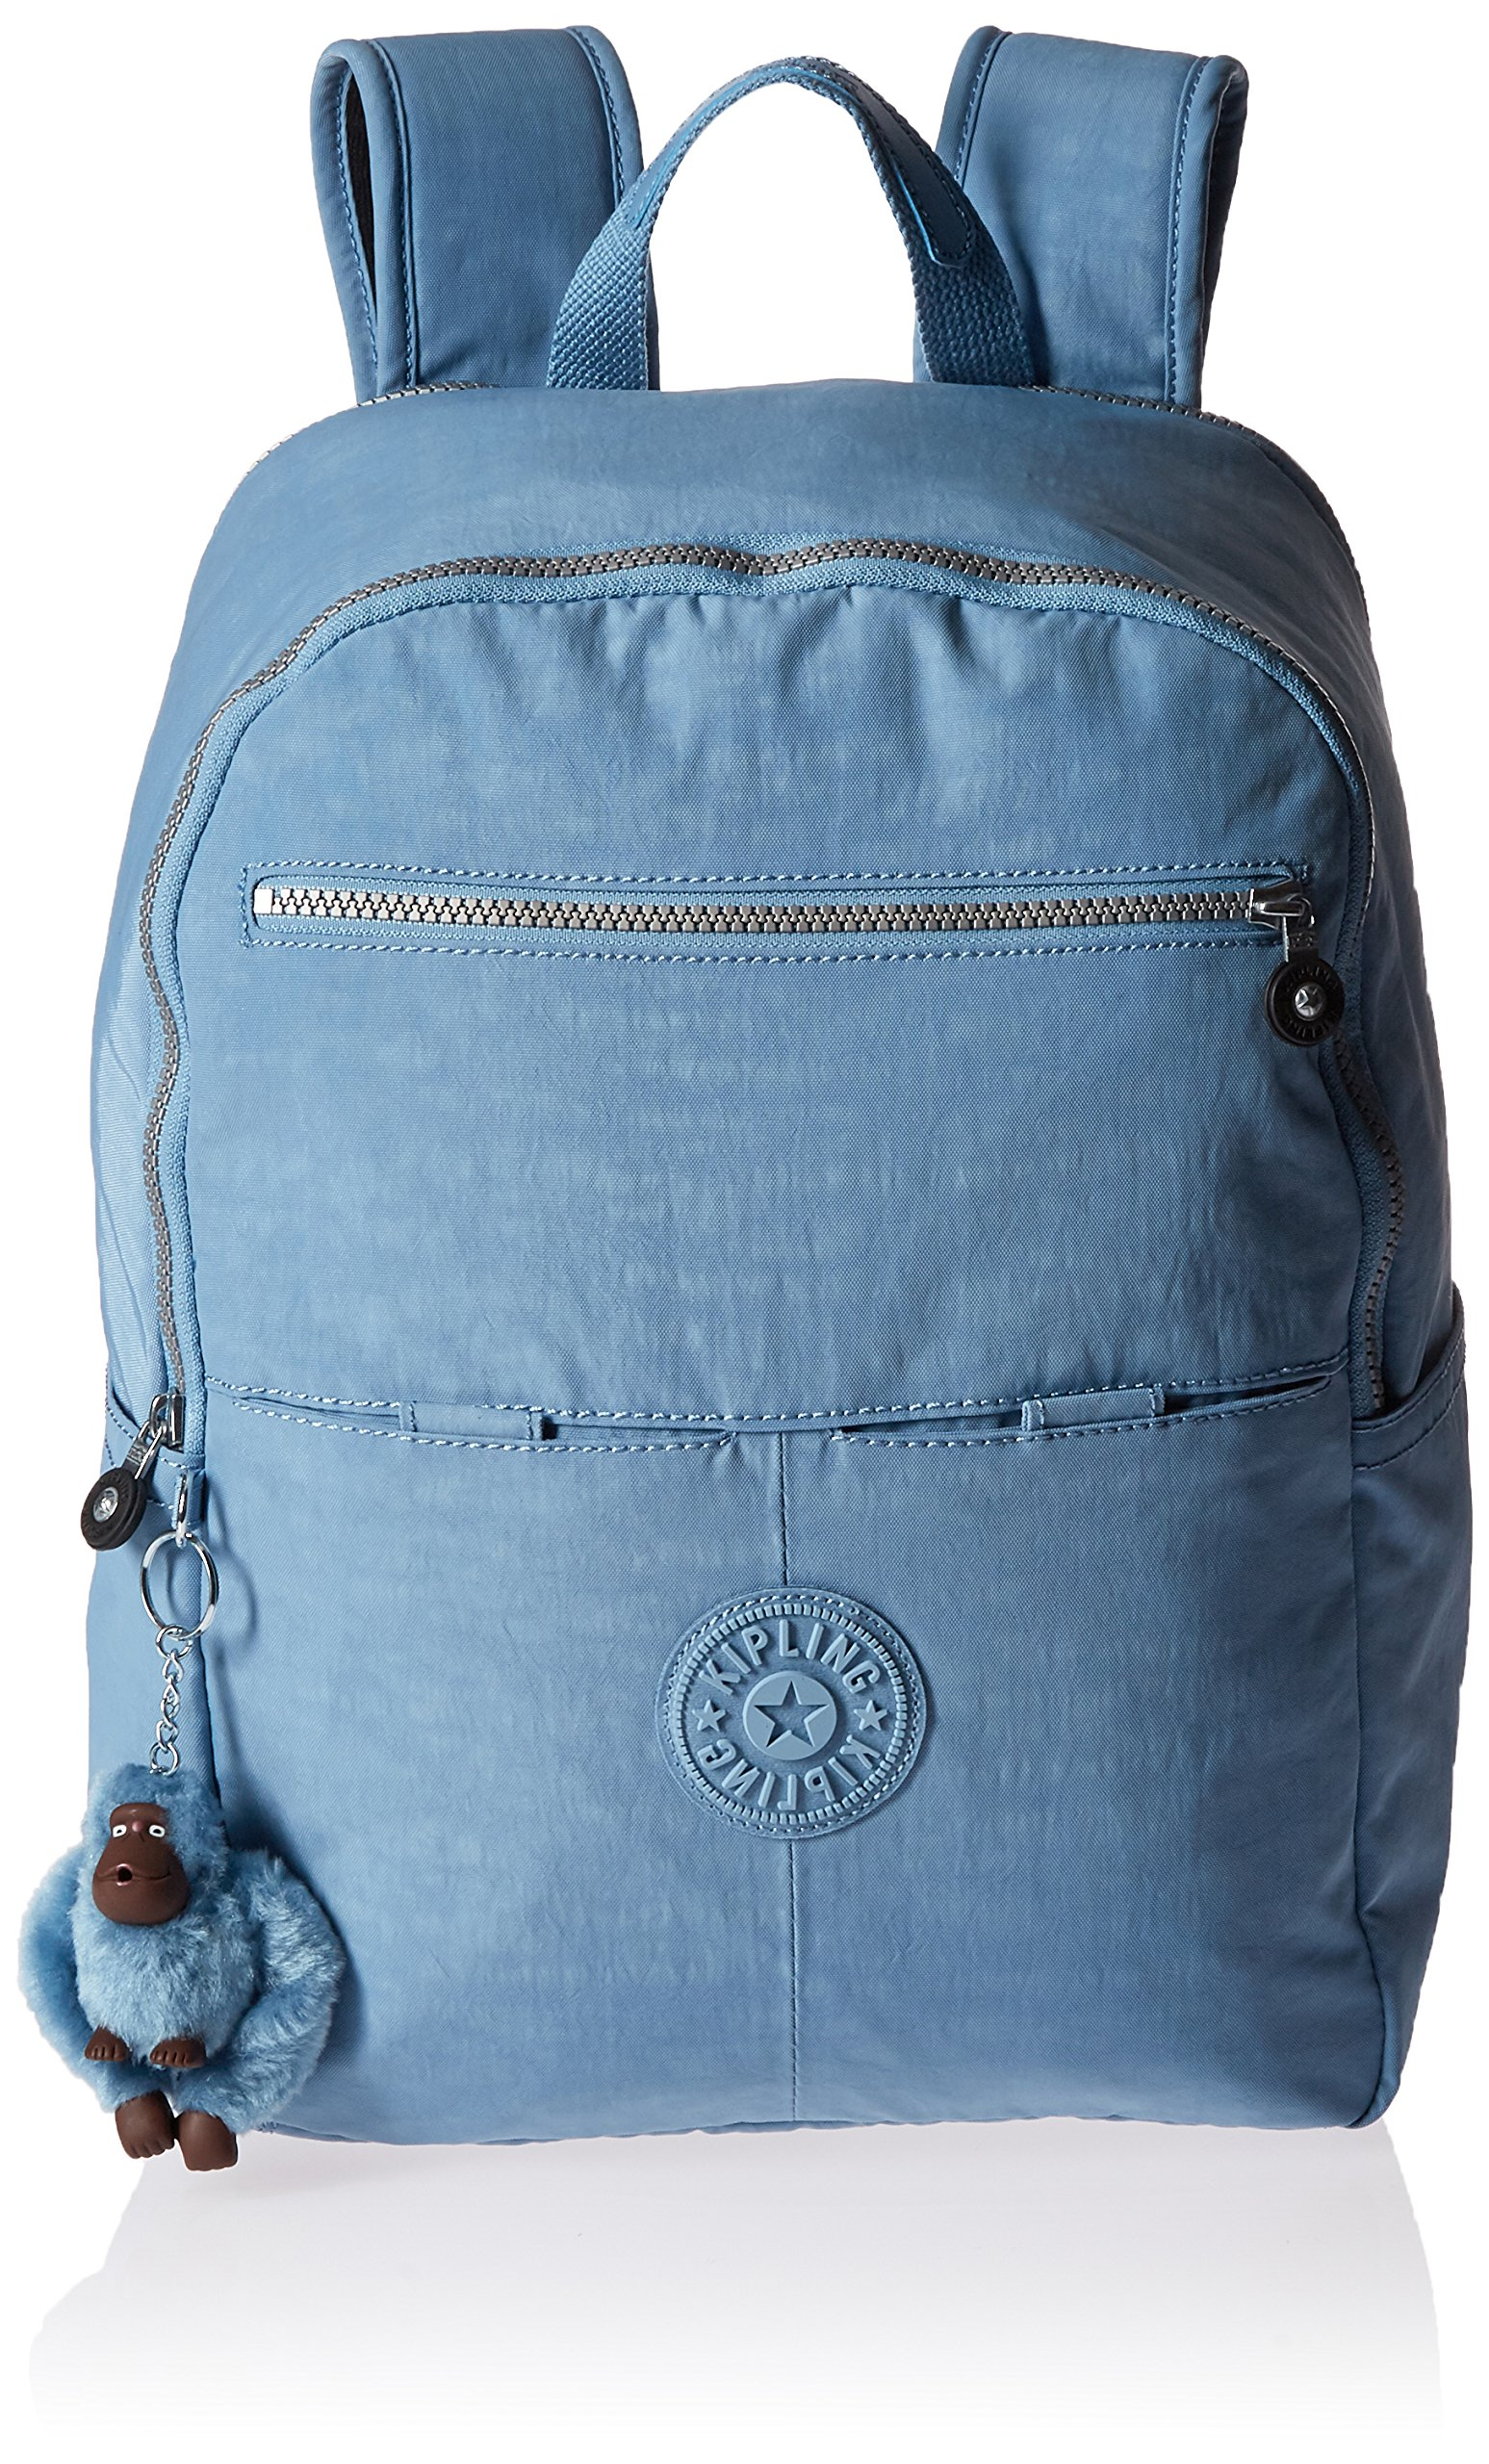 Kipling Women's Aideen Solid Backpack, Blue/Grey by Kipling